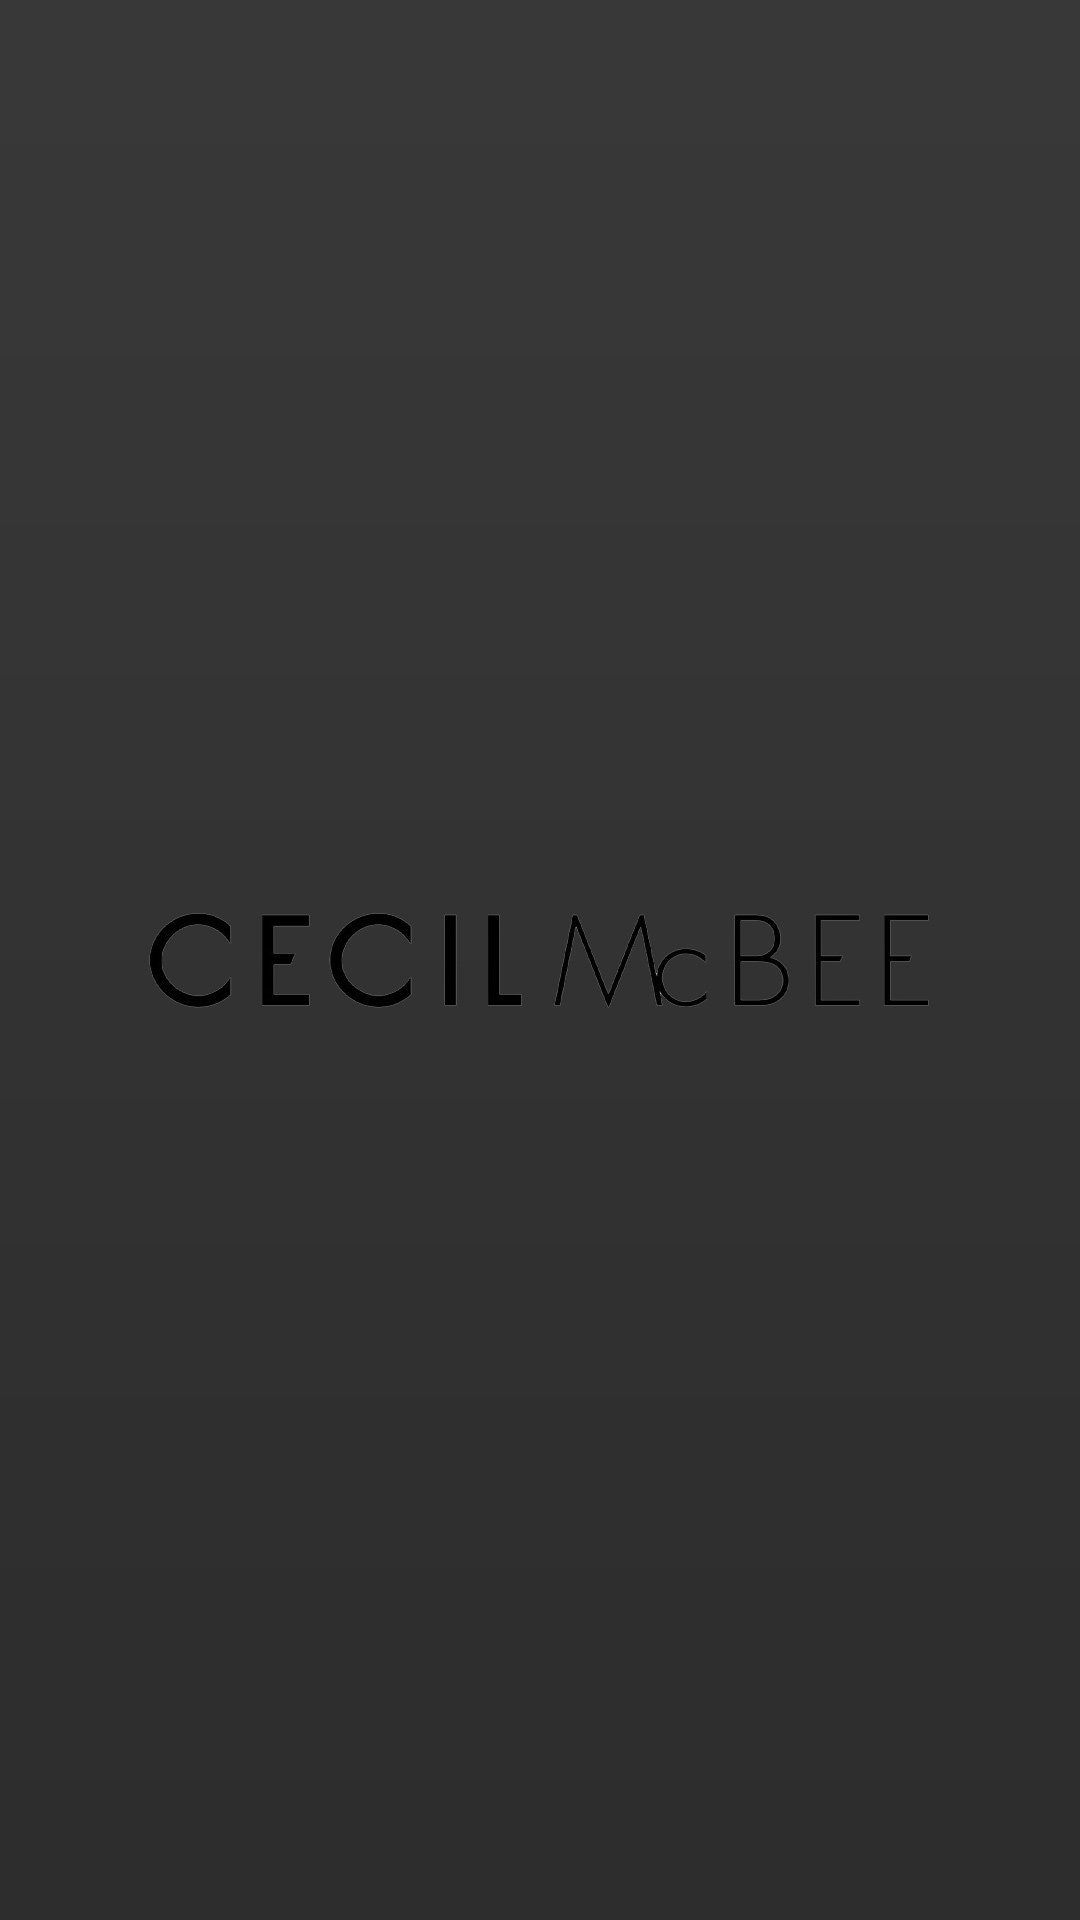 cecil00022 - セシルマクビー[CECIL McBEE]の高画質スマホ壁紙23枚 [iPhone&Androidに対応]